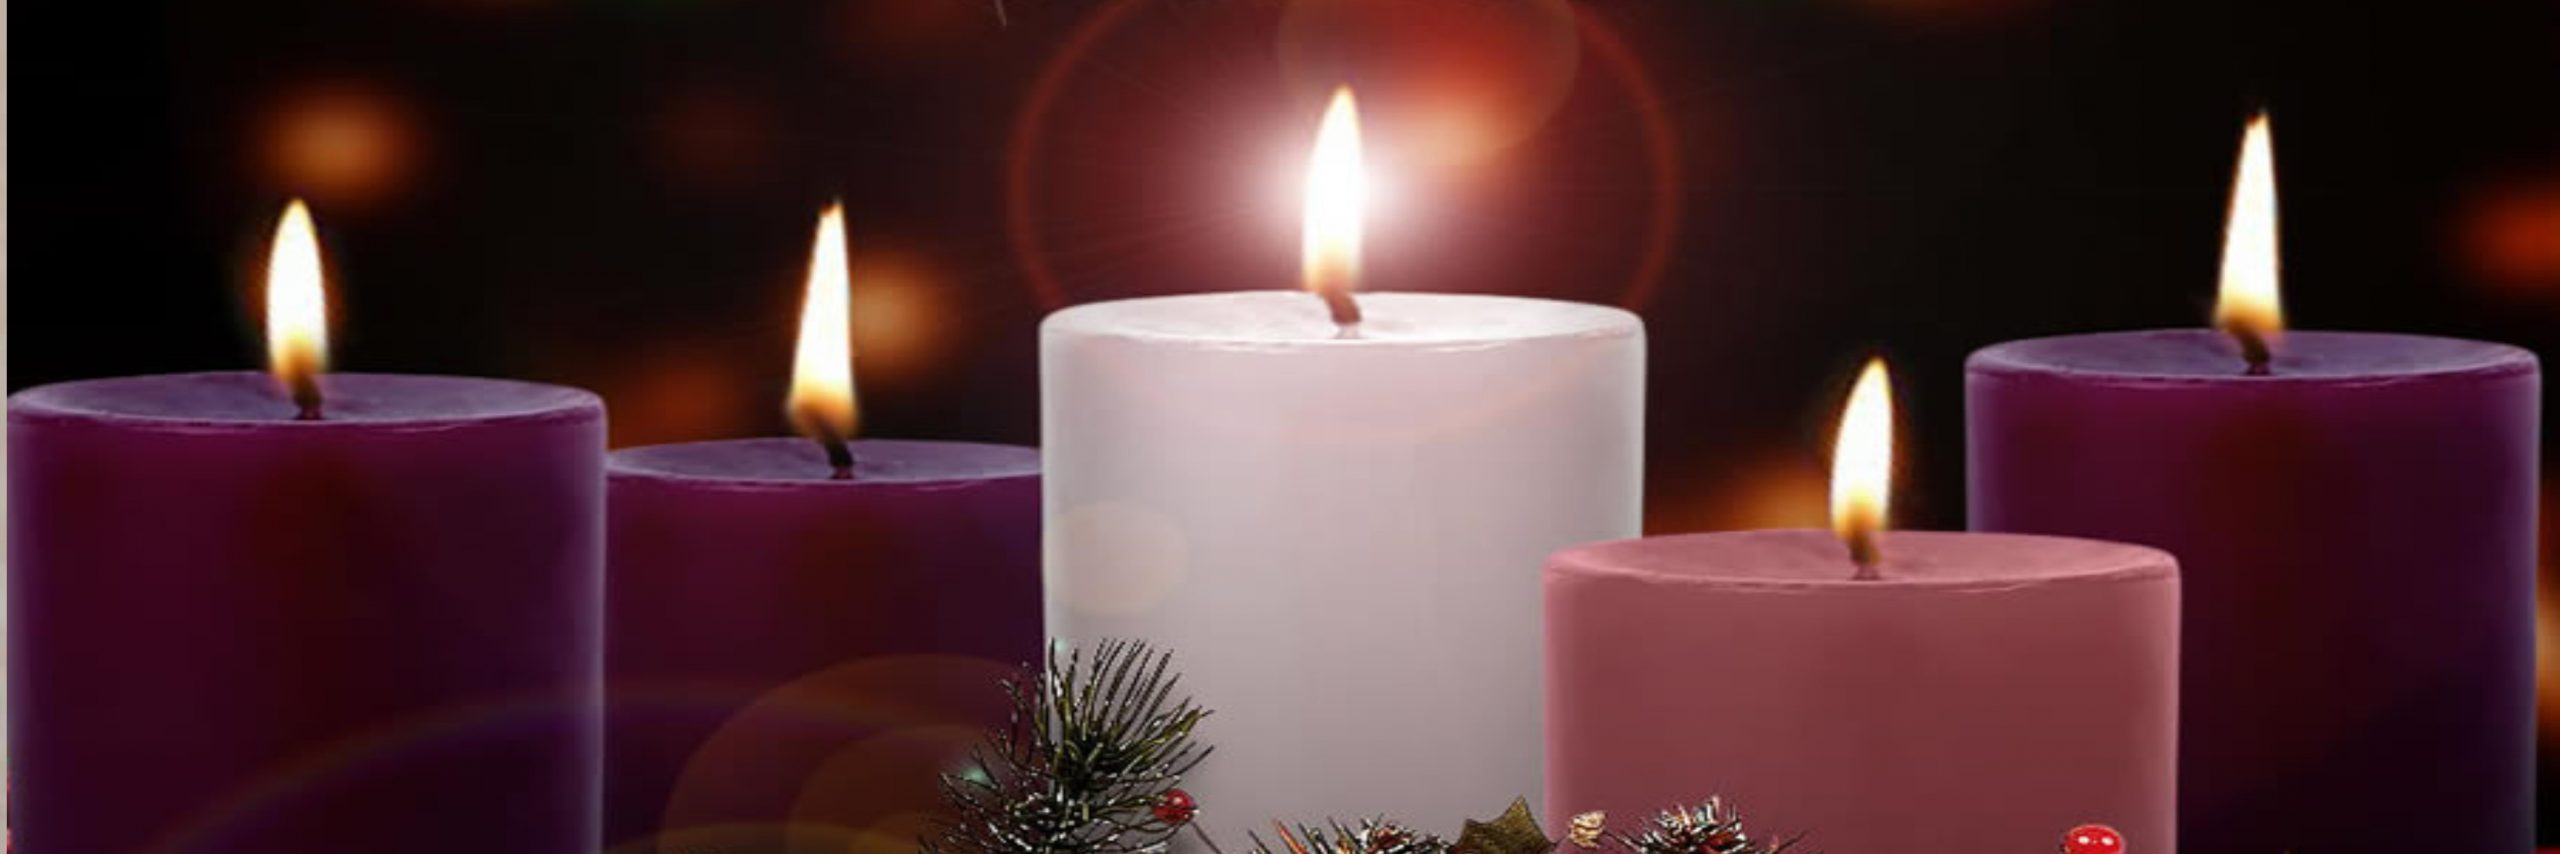 Advent means 'Coming' in Latin.